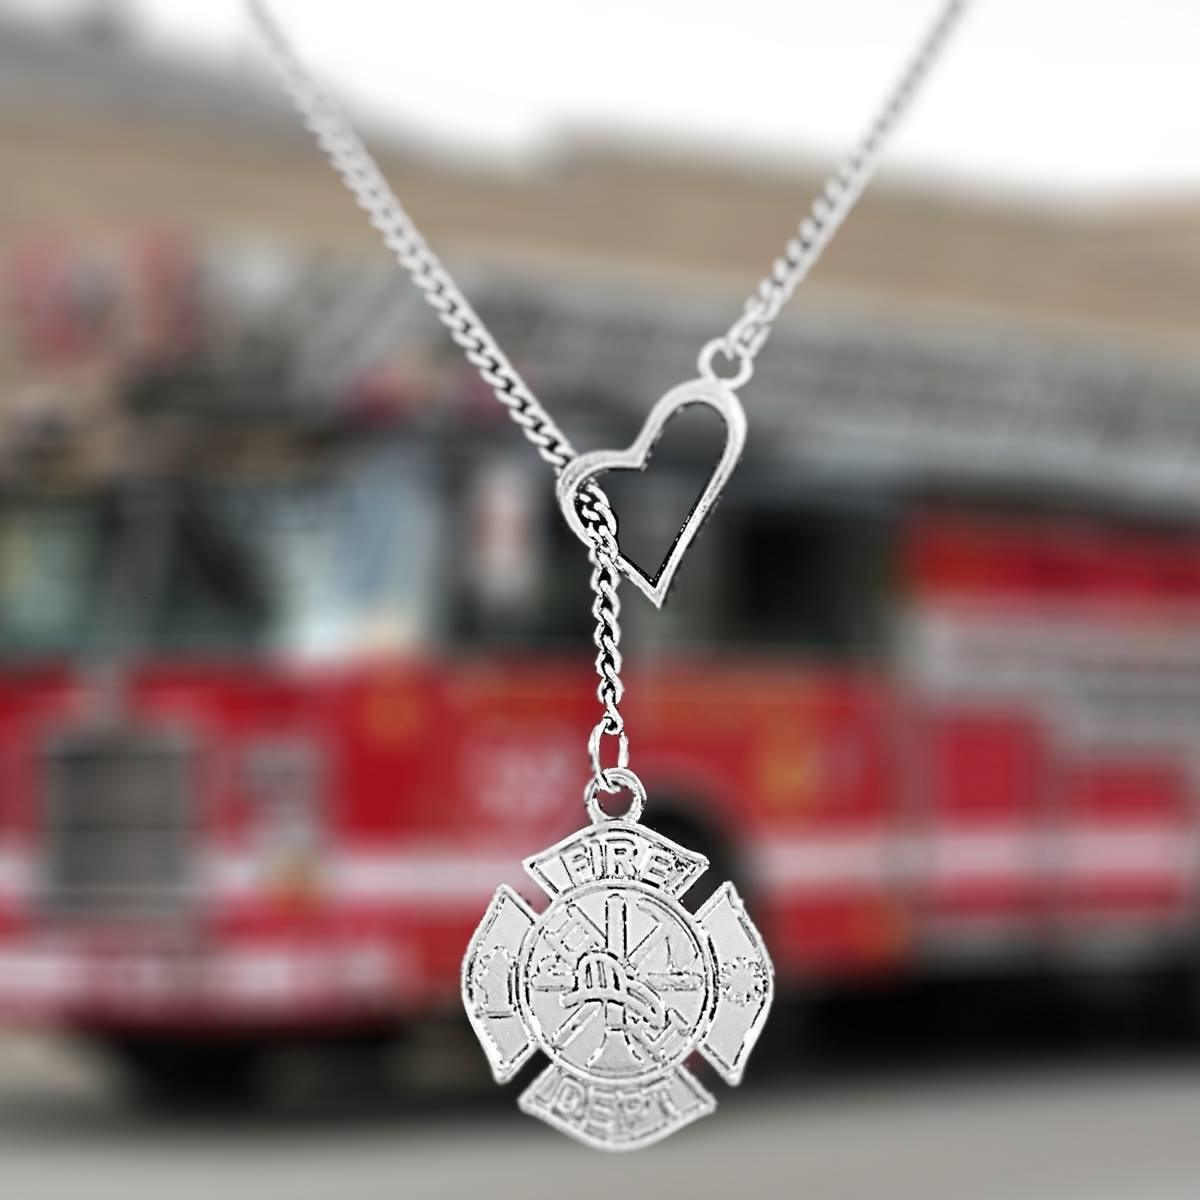 dept photo larger fire firefighter htm p pendant maltese friend cross a s outline mom heart email charm necklace